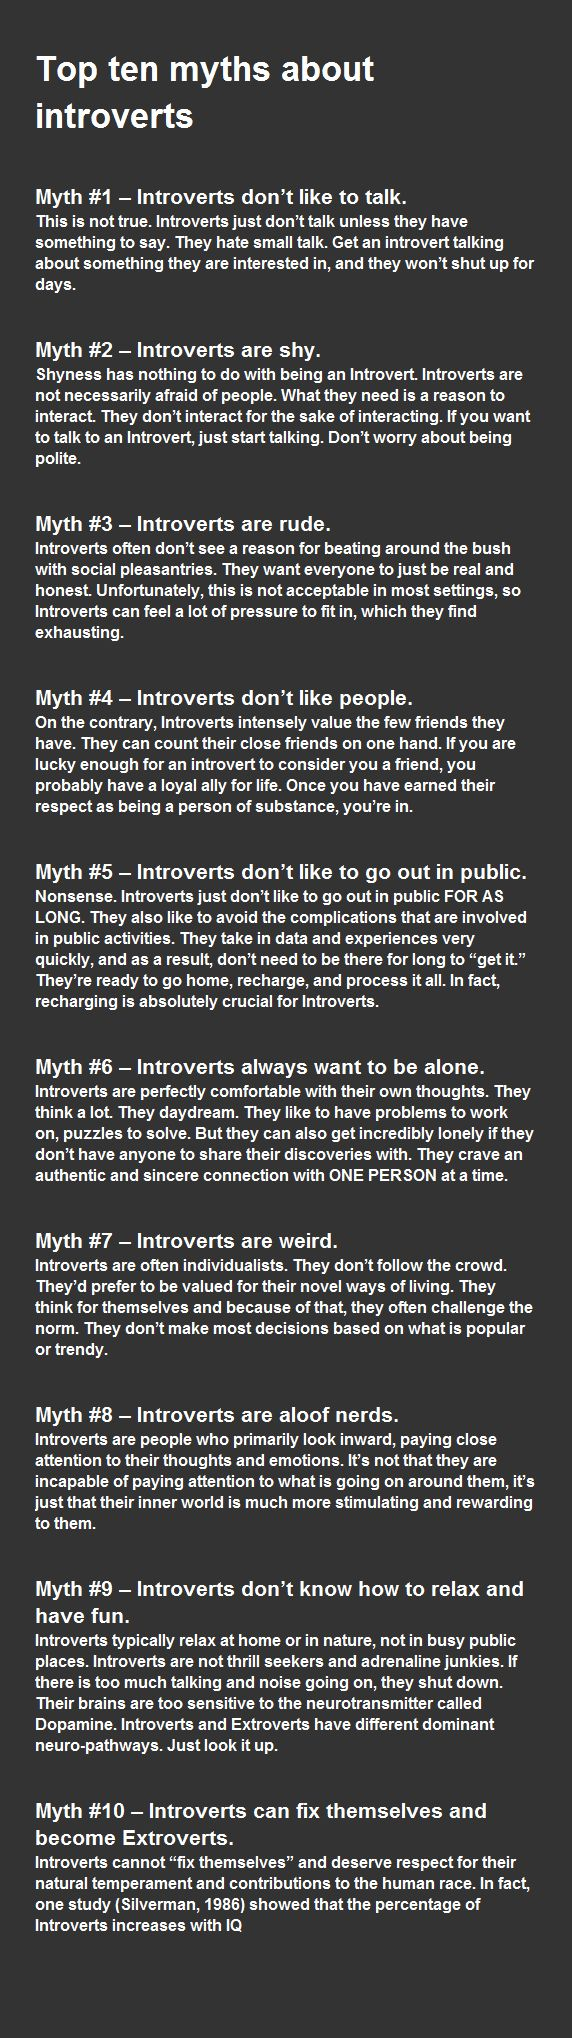 So helpful on my quest to have a better understanding about introverts :)